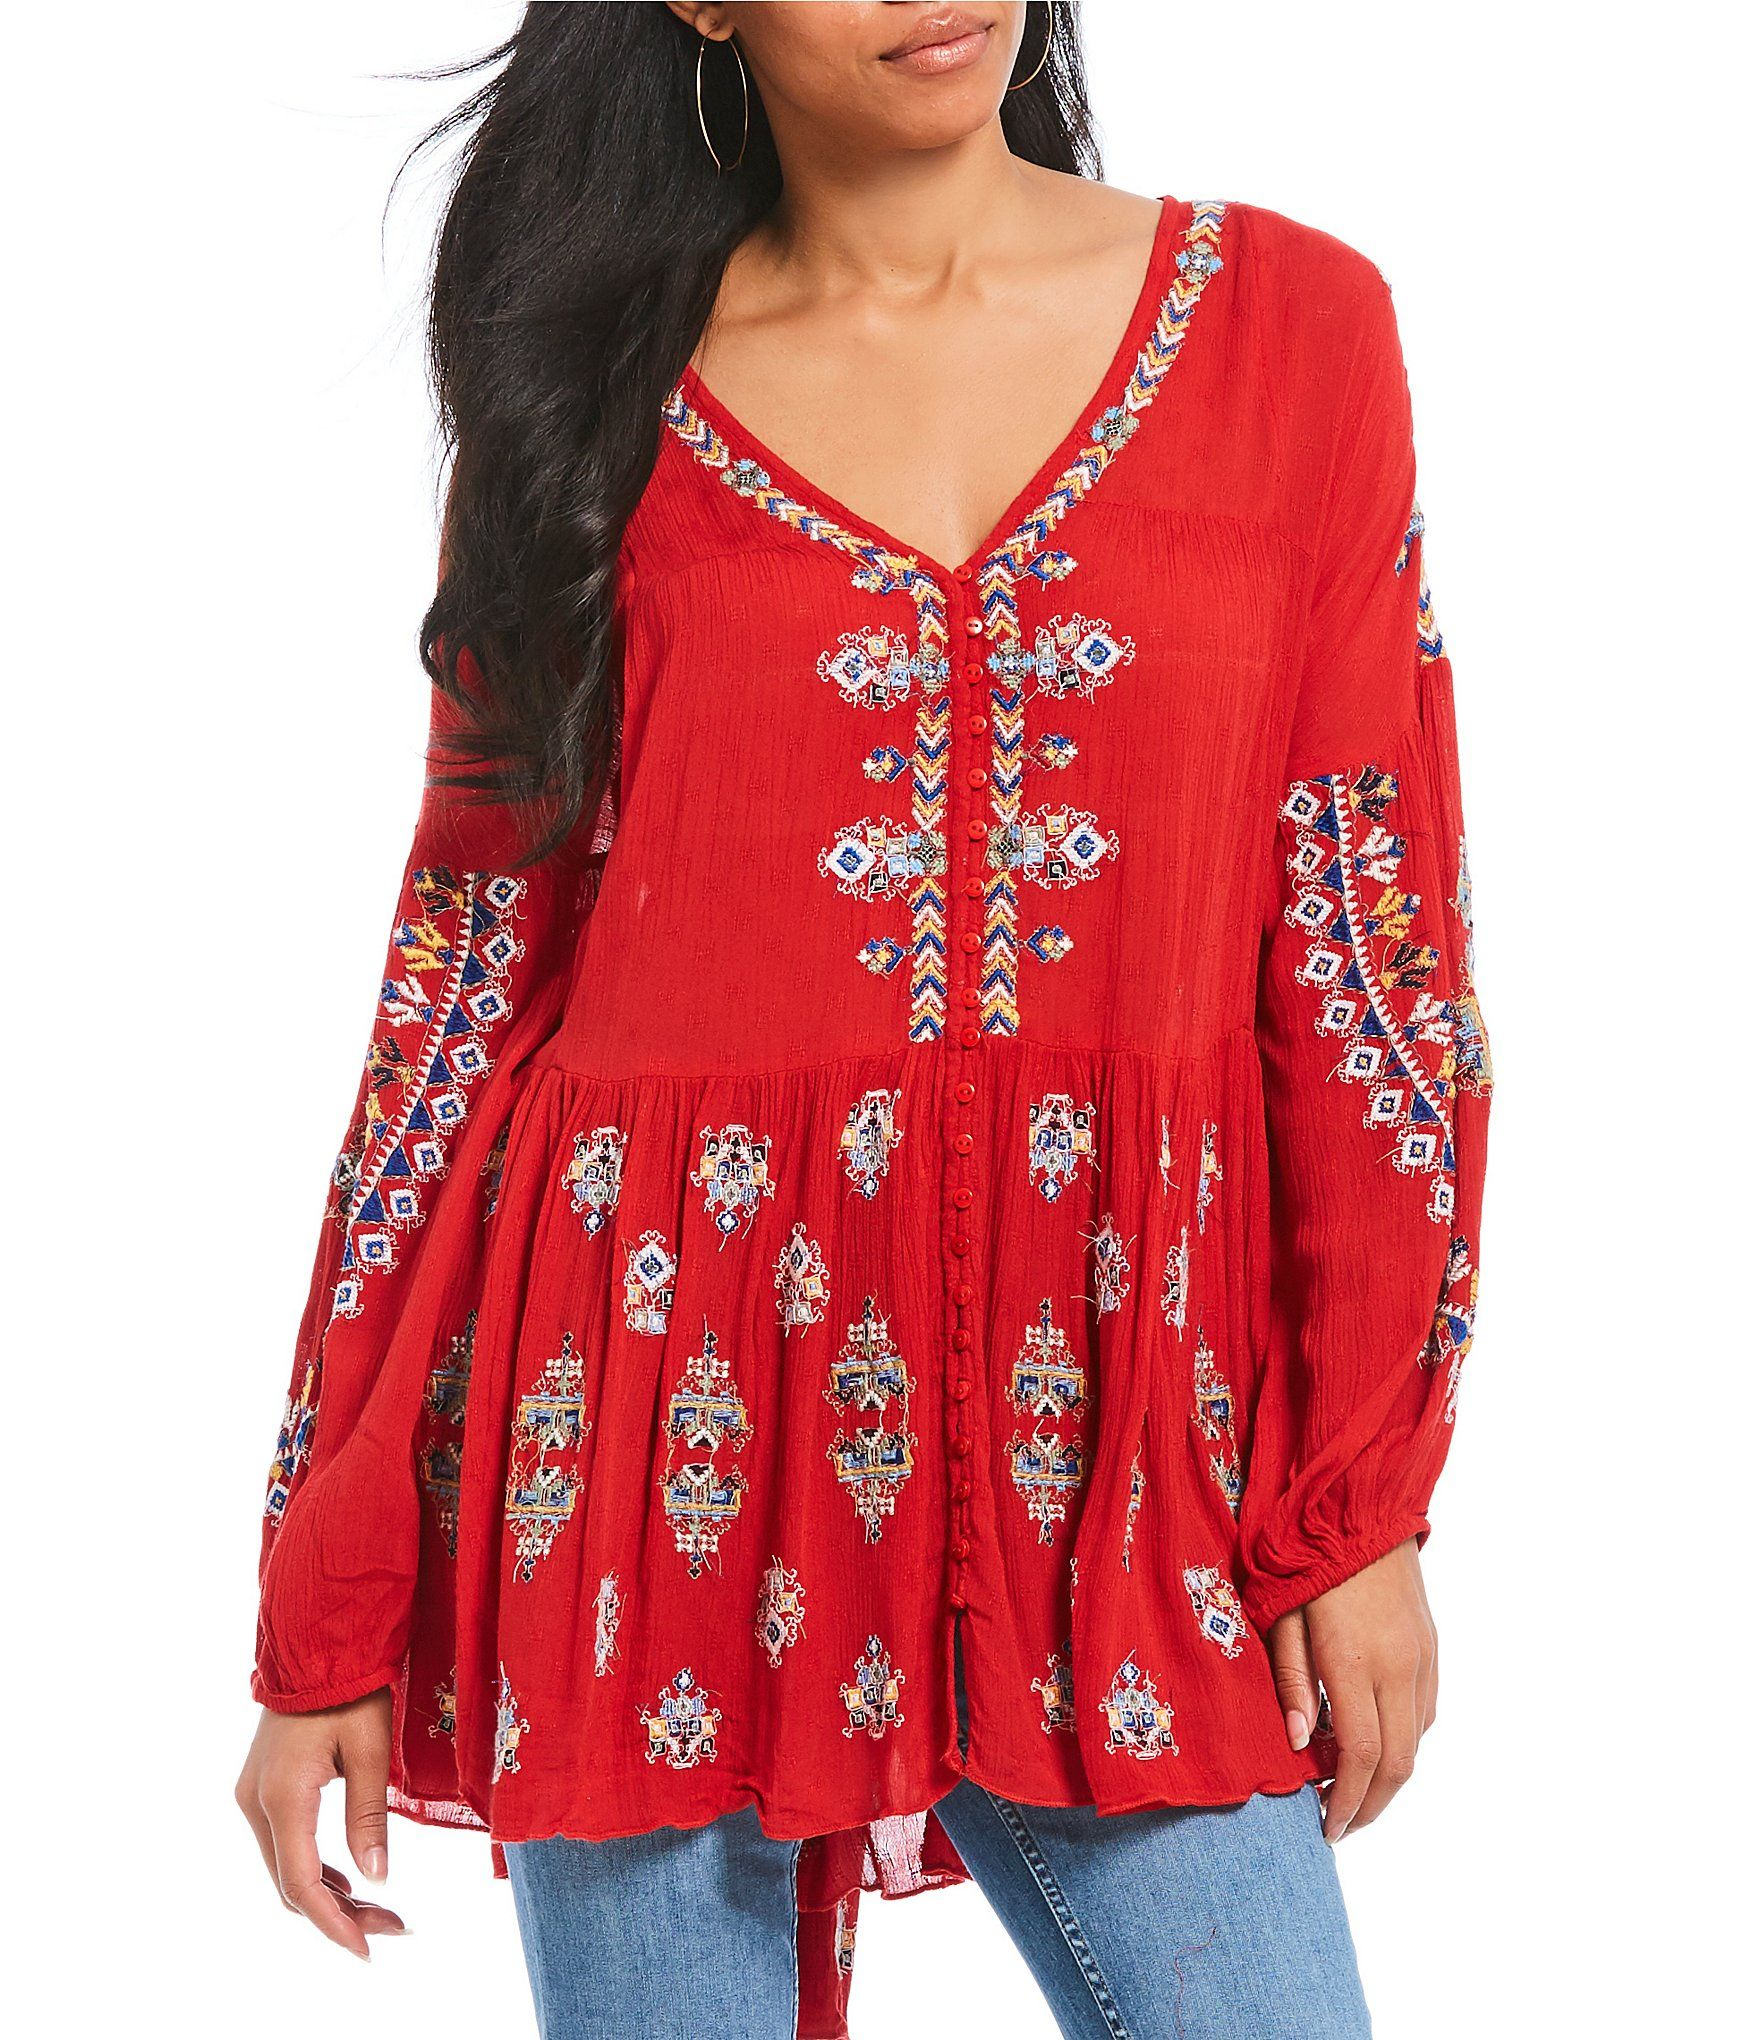 226d3ef59ec Free People Arianna Woven Embroidered Balloon Sleeve Tunic Top #Dillards